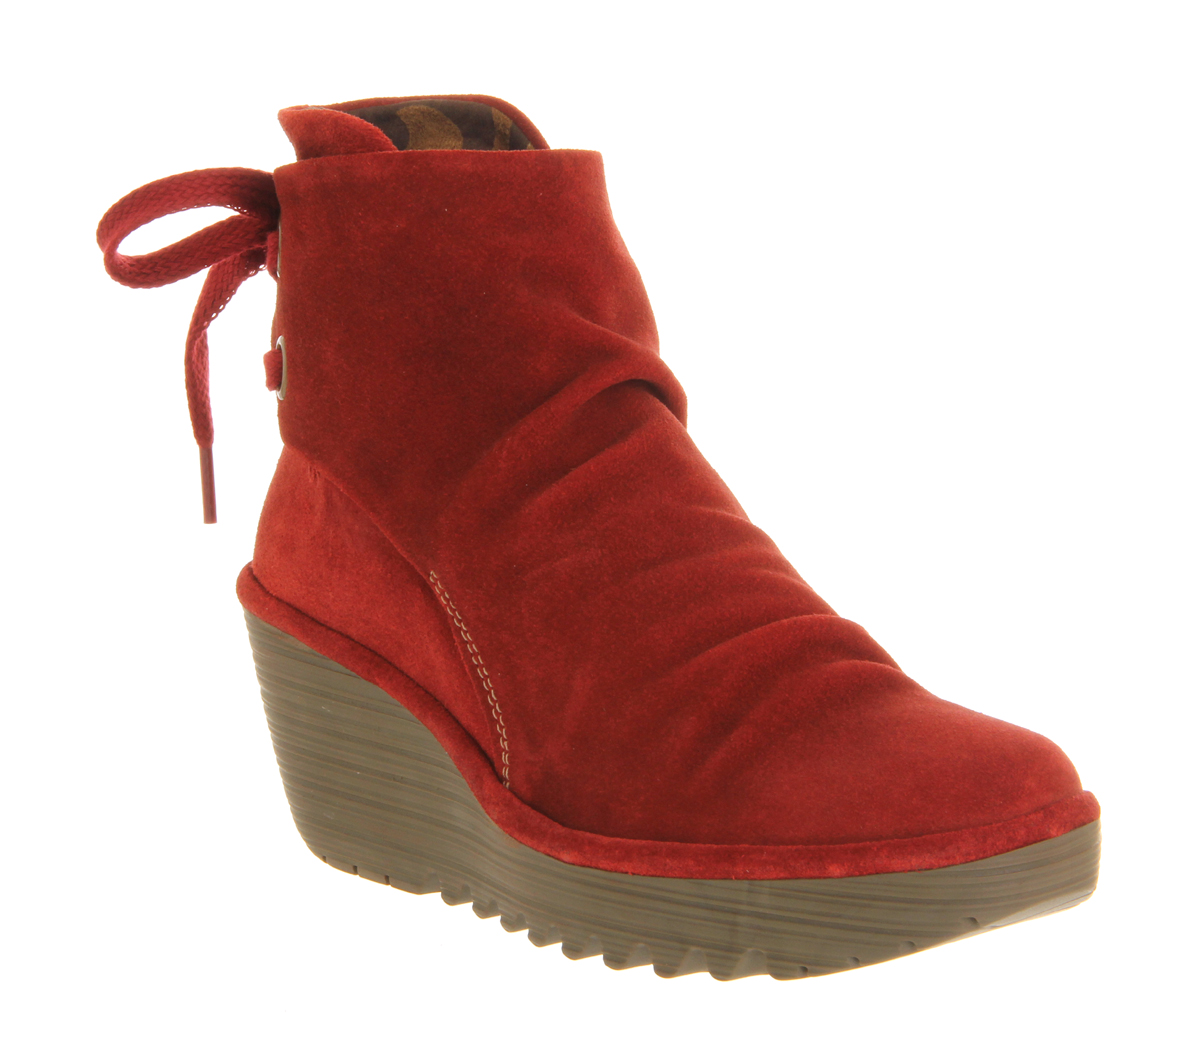 Excellent Red Suede Western Ankle Boots - Shoes U0026 Boots - Sale - Women